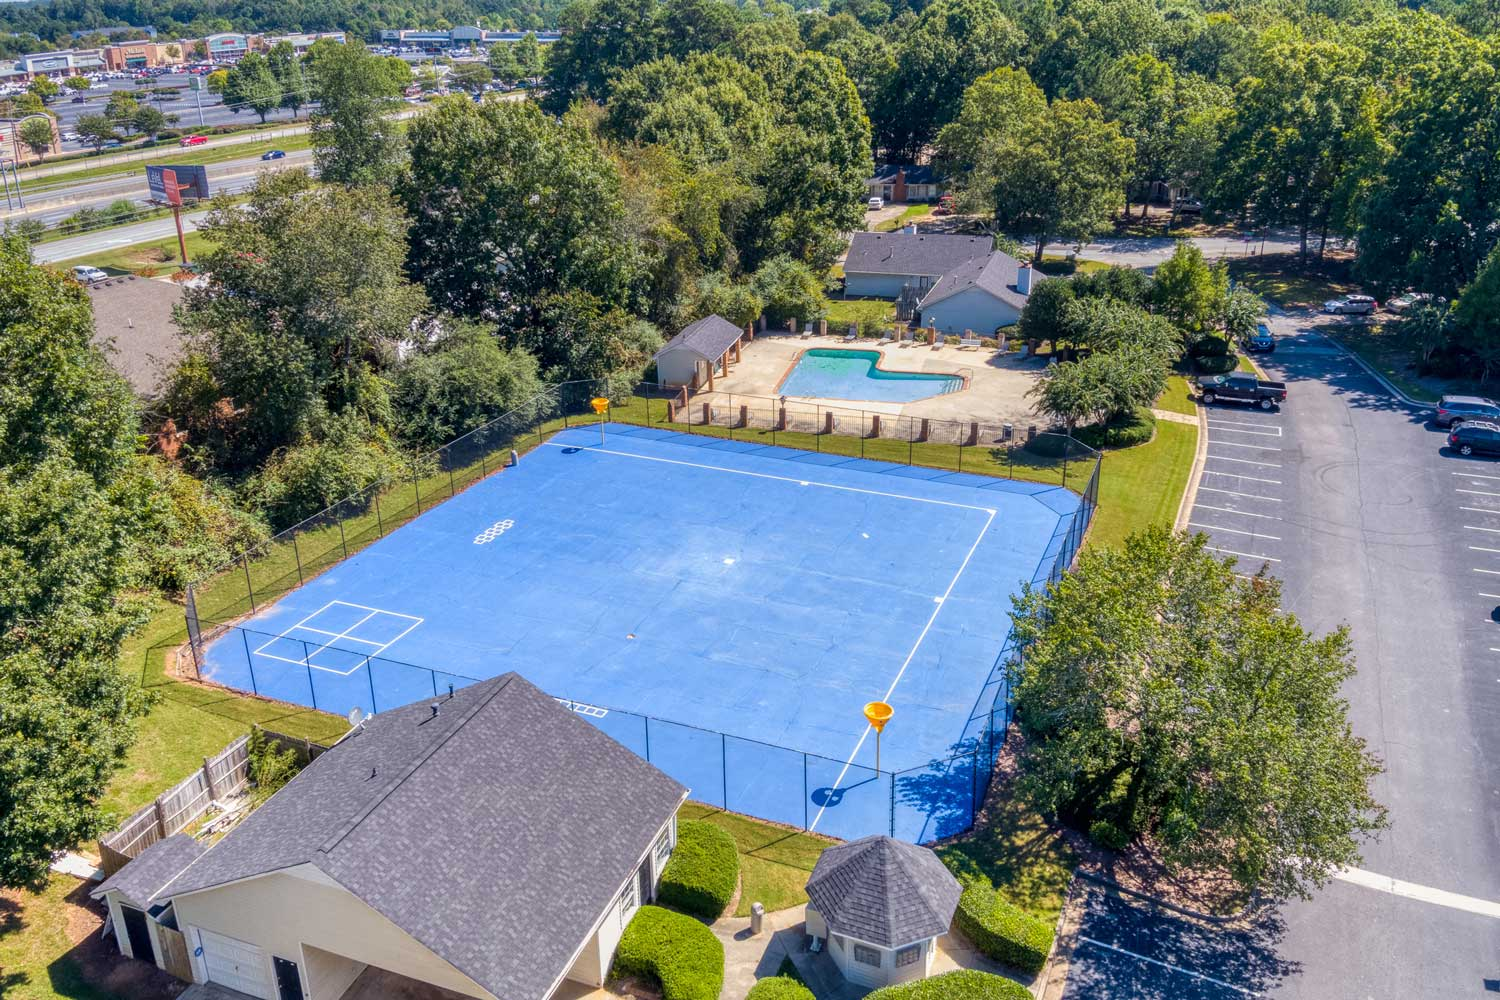 Court at Tall Oaks Apartments and Villas in Conyers, GA